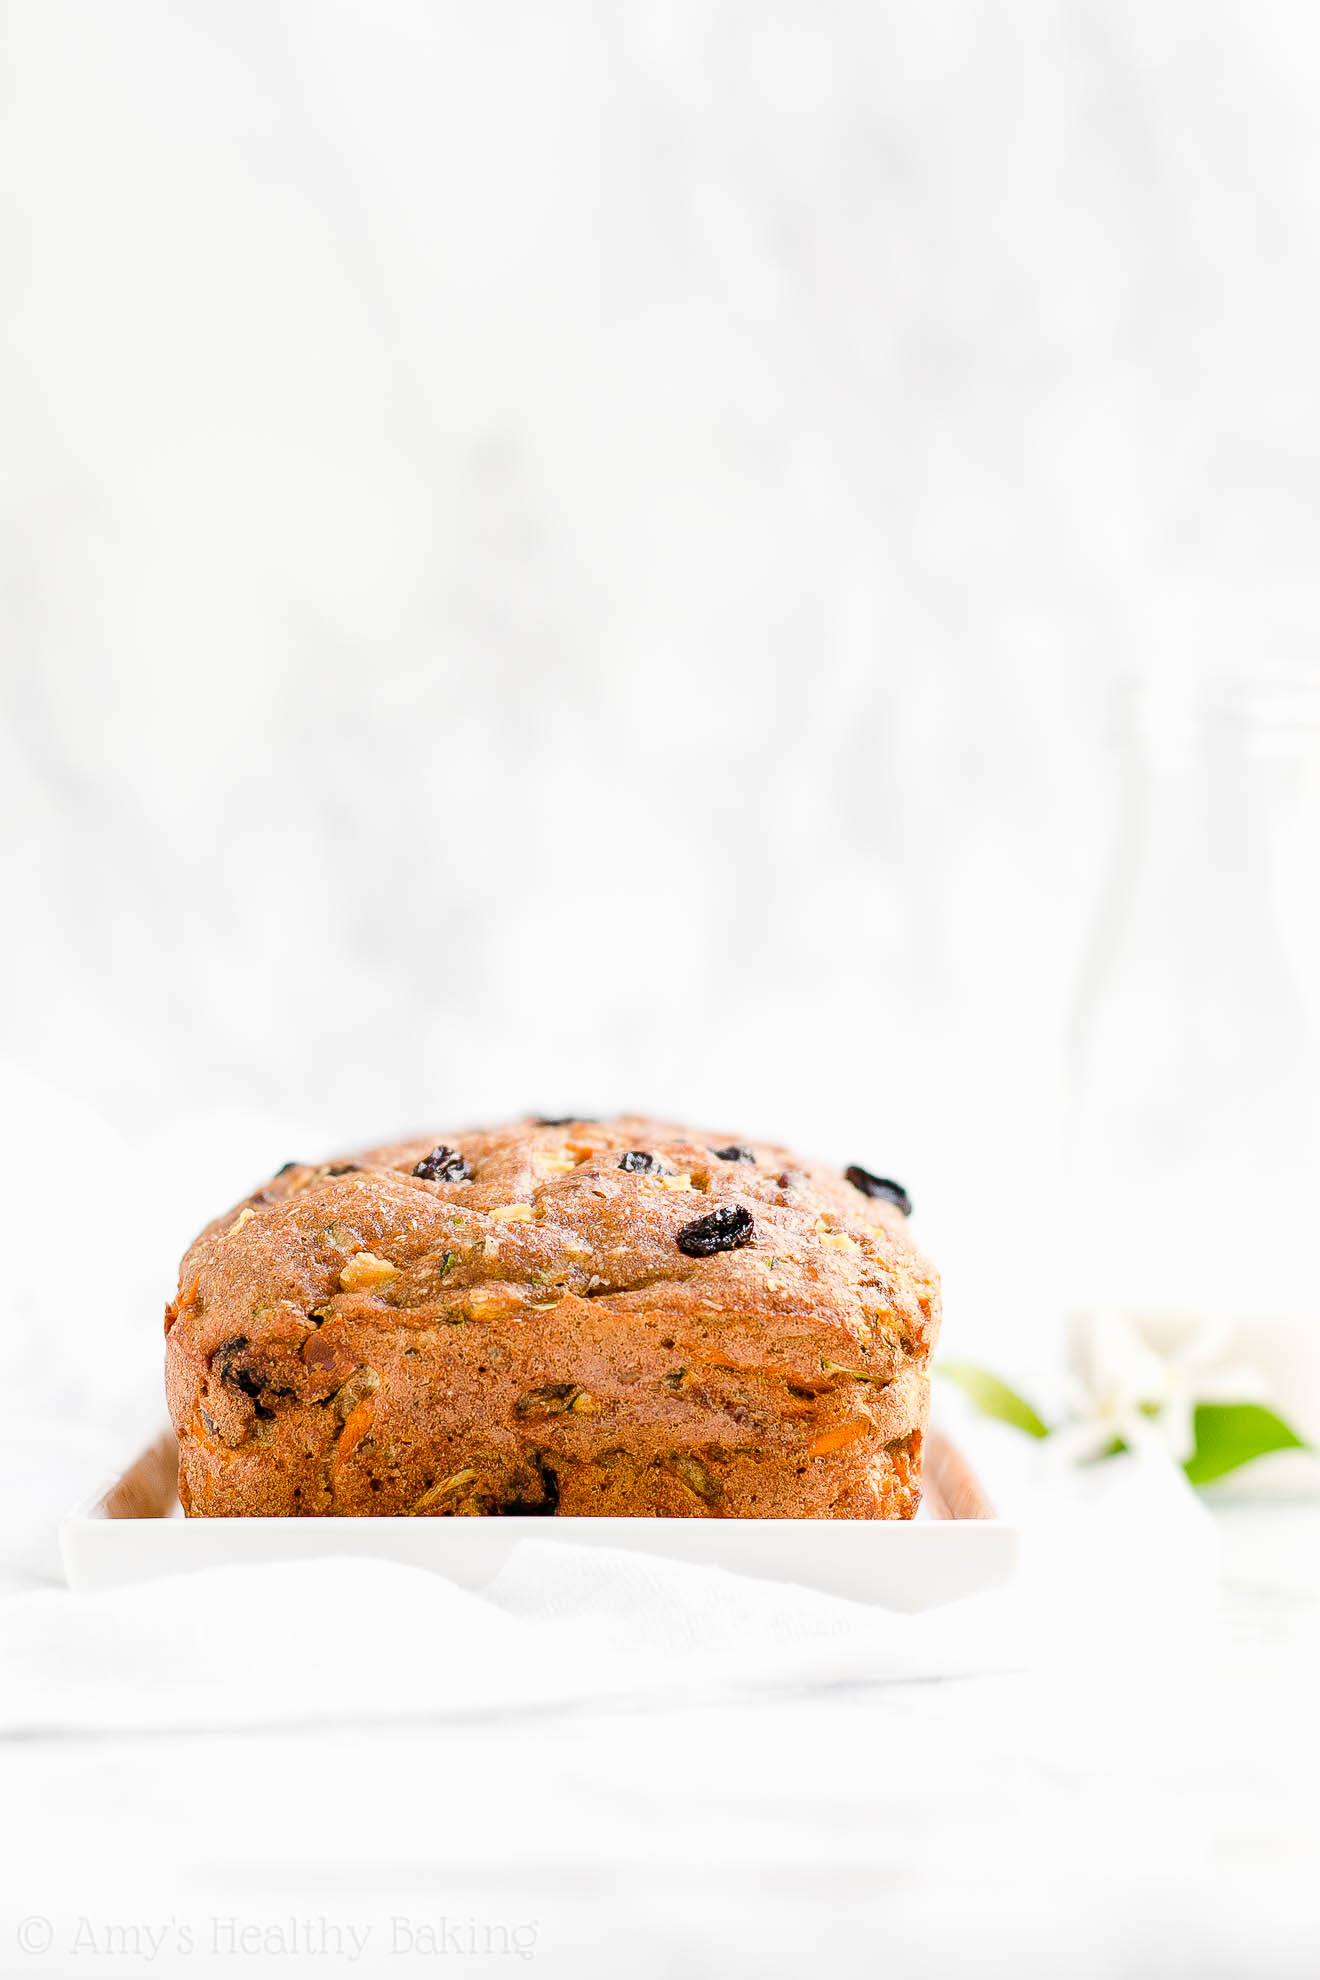 Healthy No Sugar Morning Glory Zucchini Bread